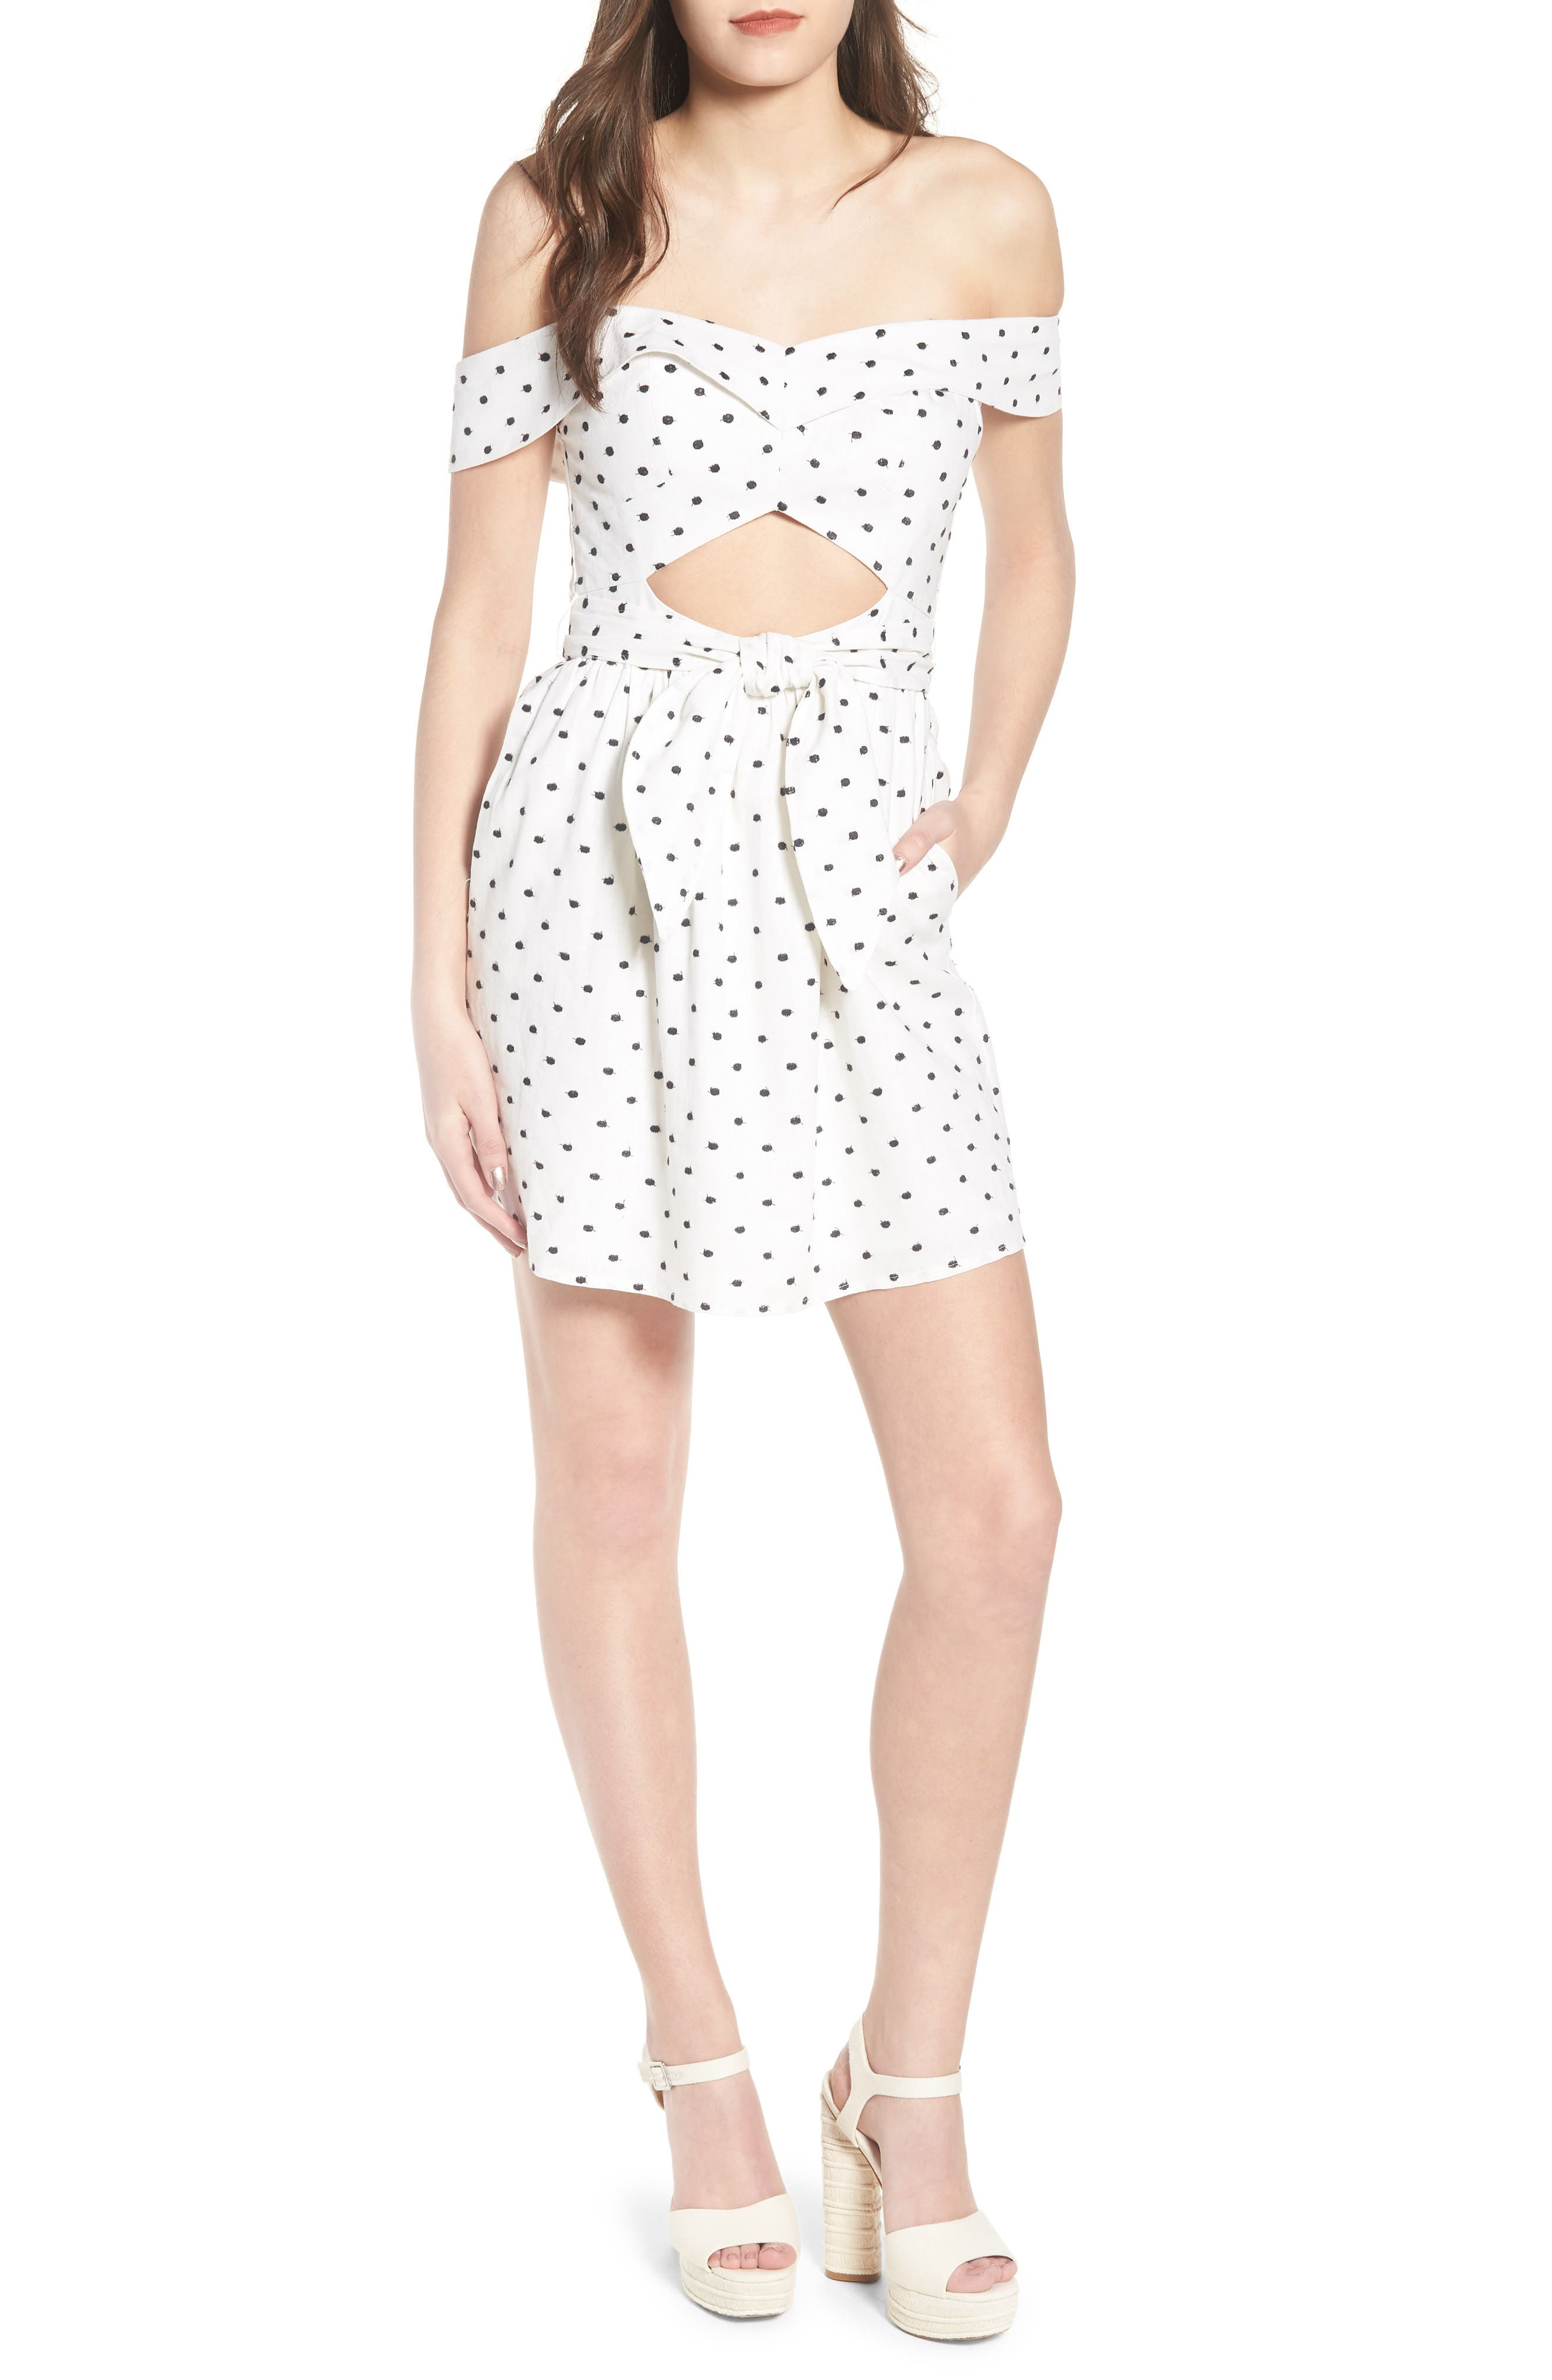 Capri Knot Cutout Minidress,                         Main,                         color, Ivory Polka Dot